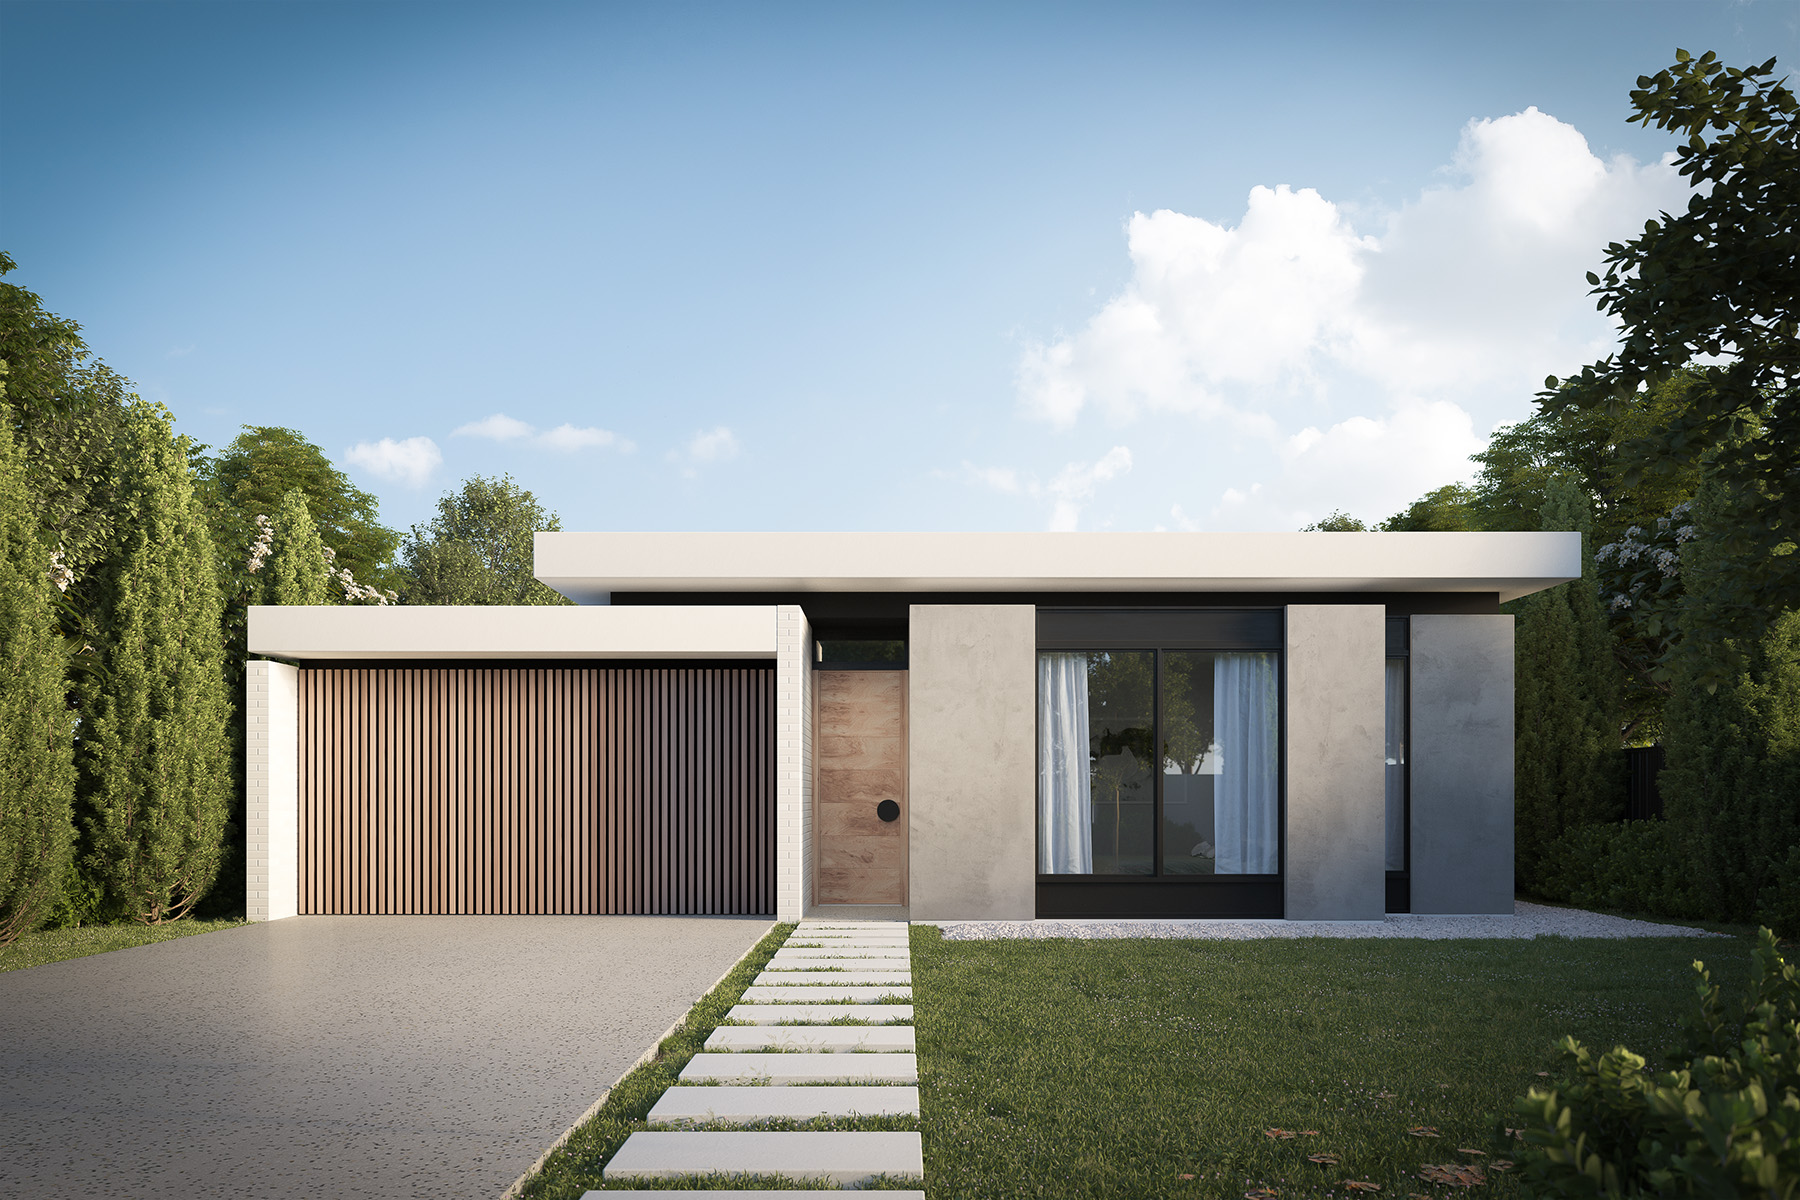 Rdvis 3d rendering architectural virtual tour for Single level home designs nsw